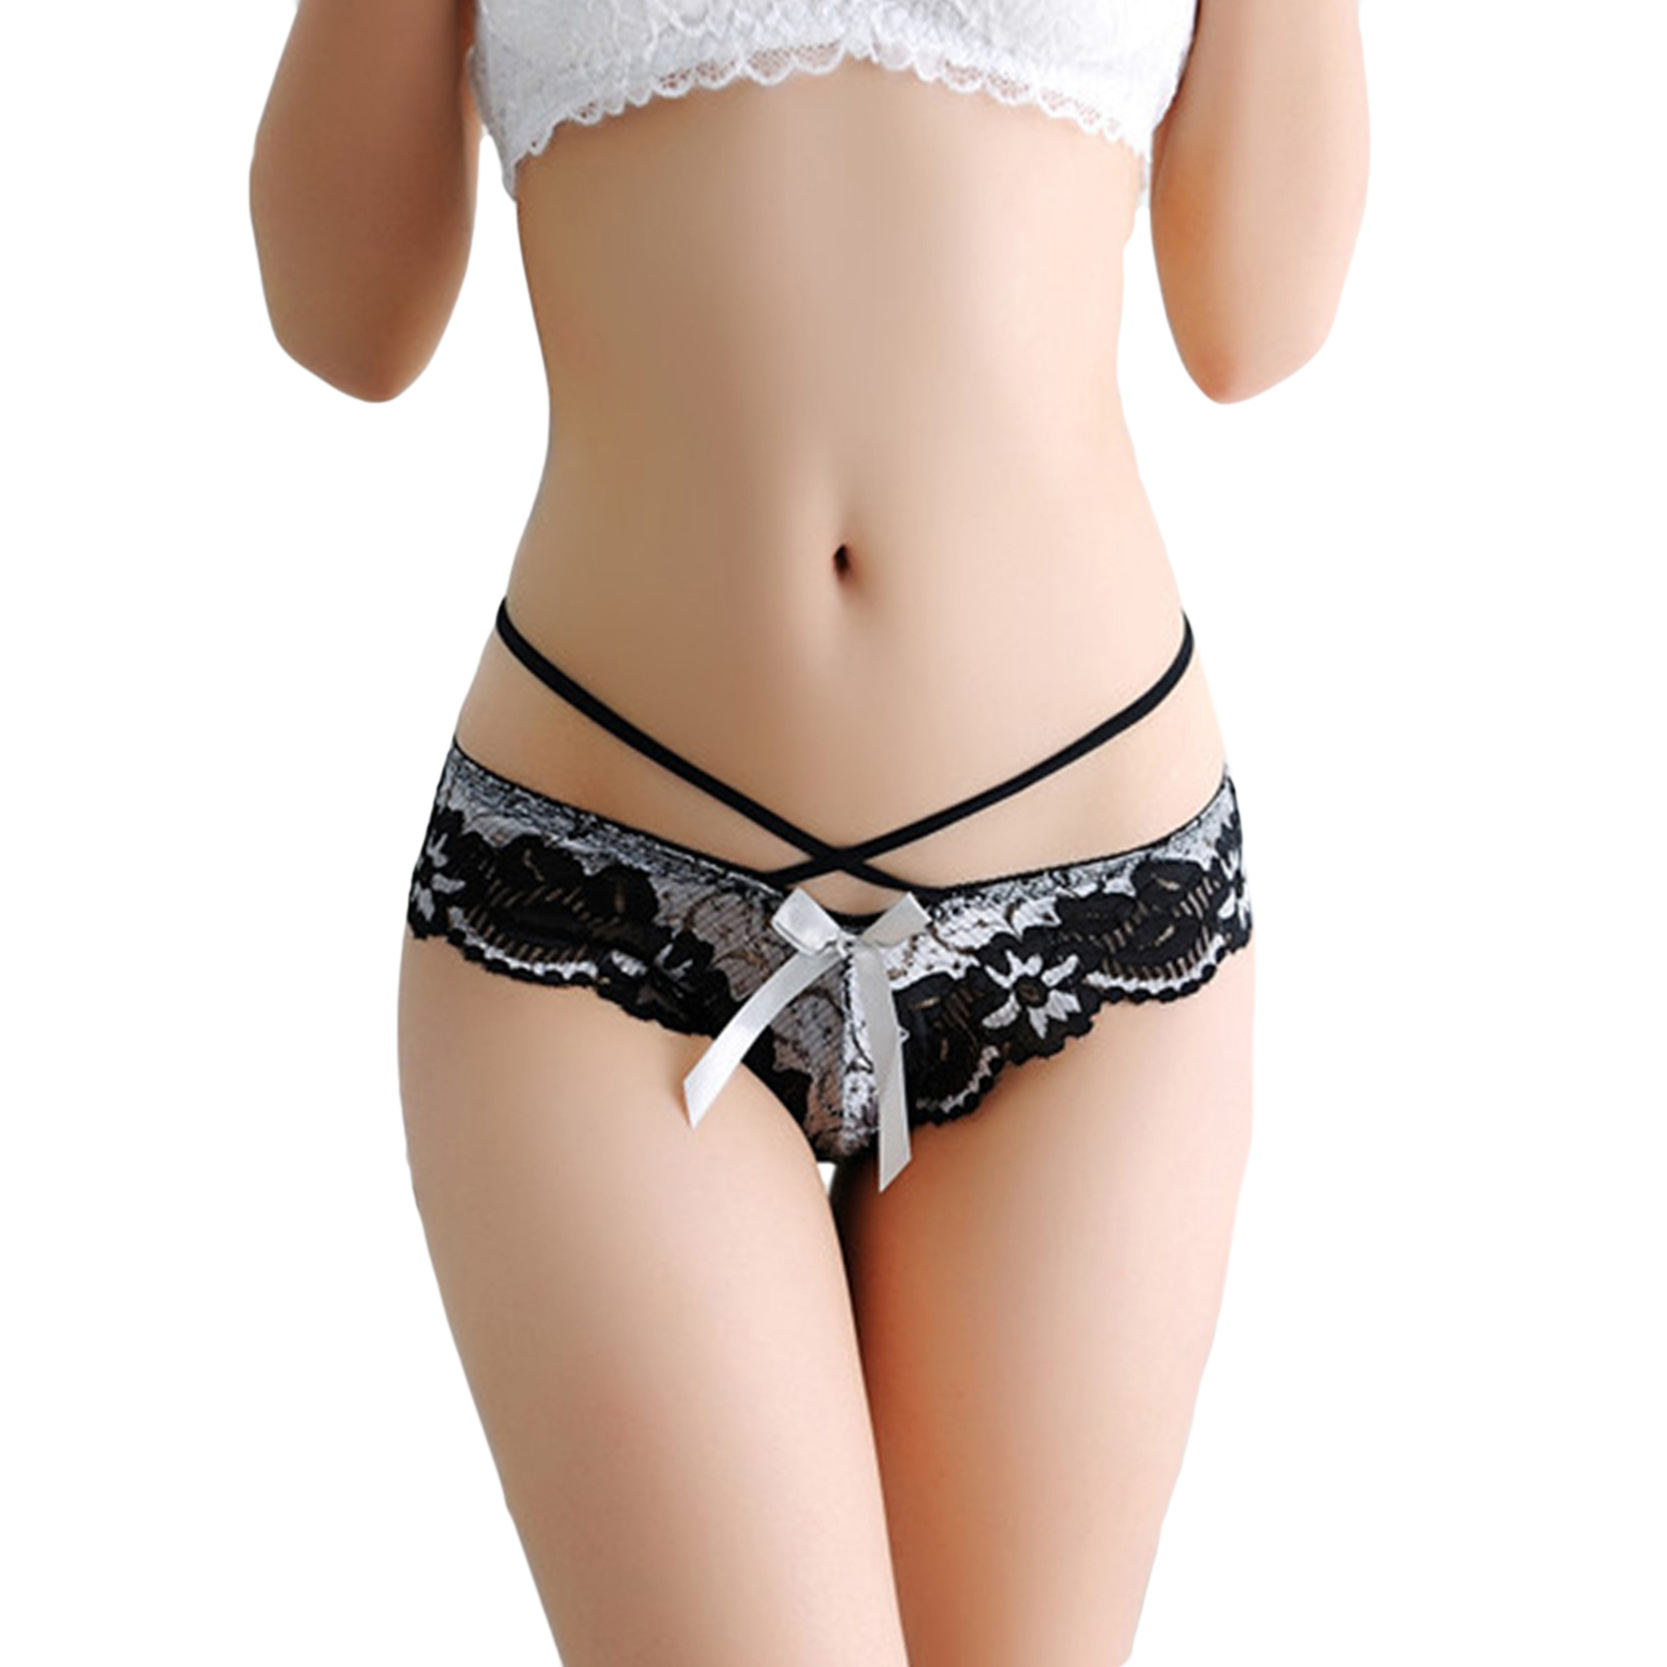 Enjoy free shipping and easy returns every day at Kohl's. Find great deals on Lace Panties at Kohl's today!